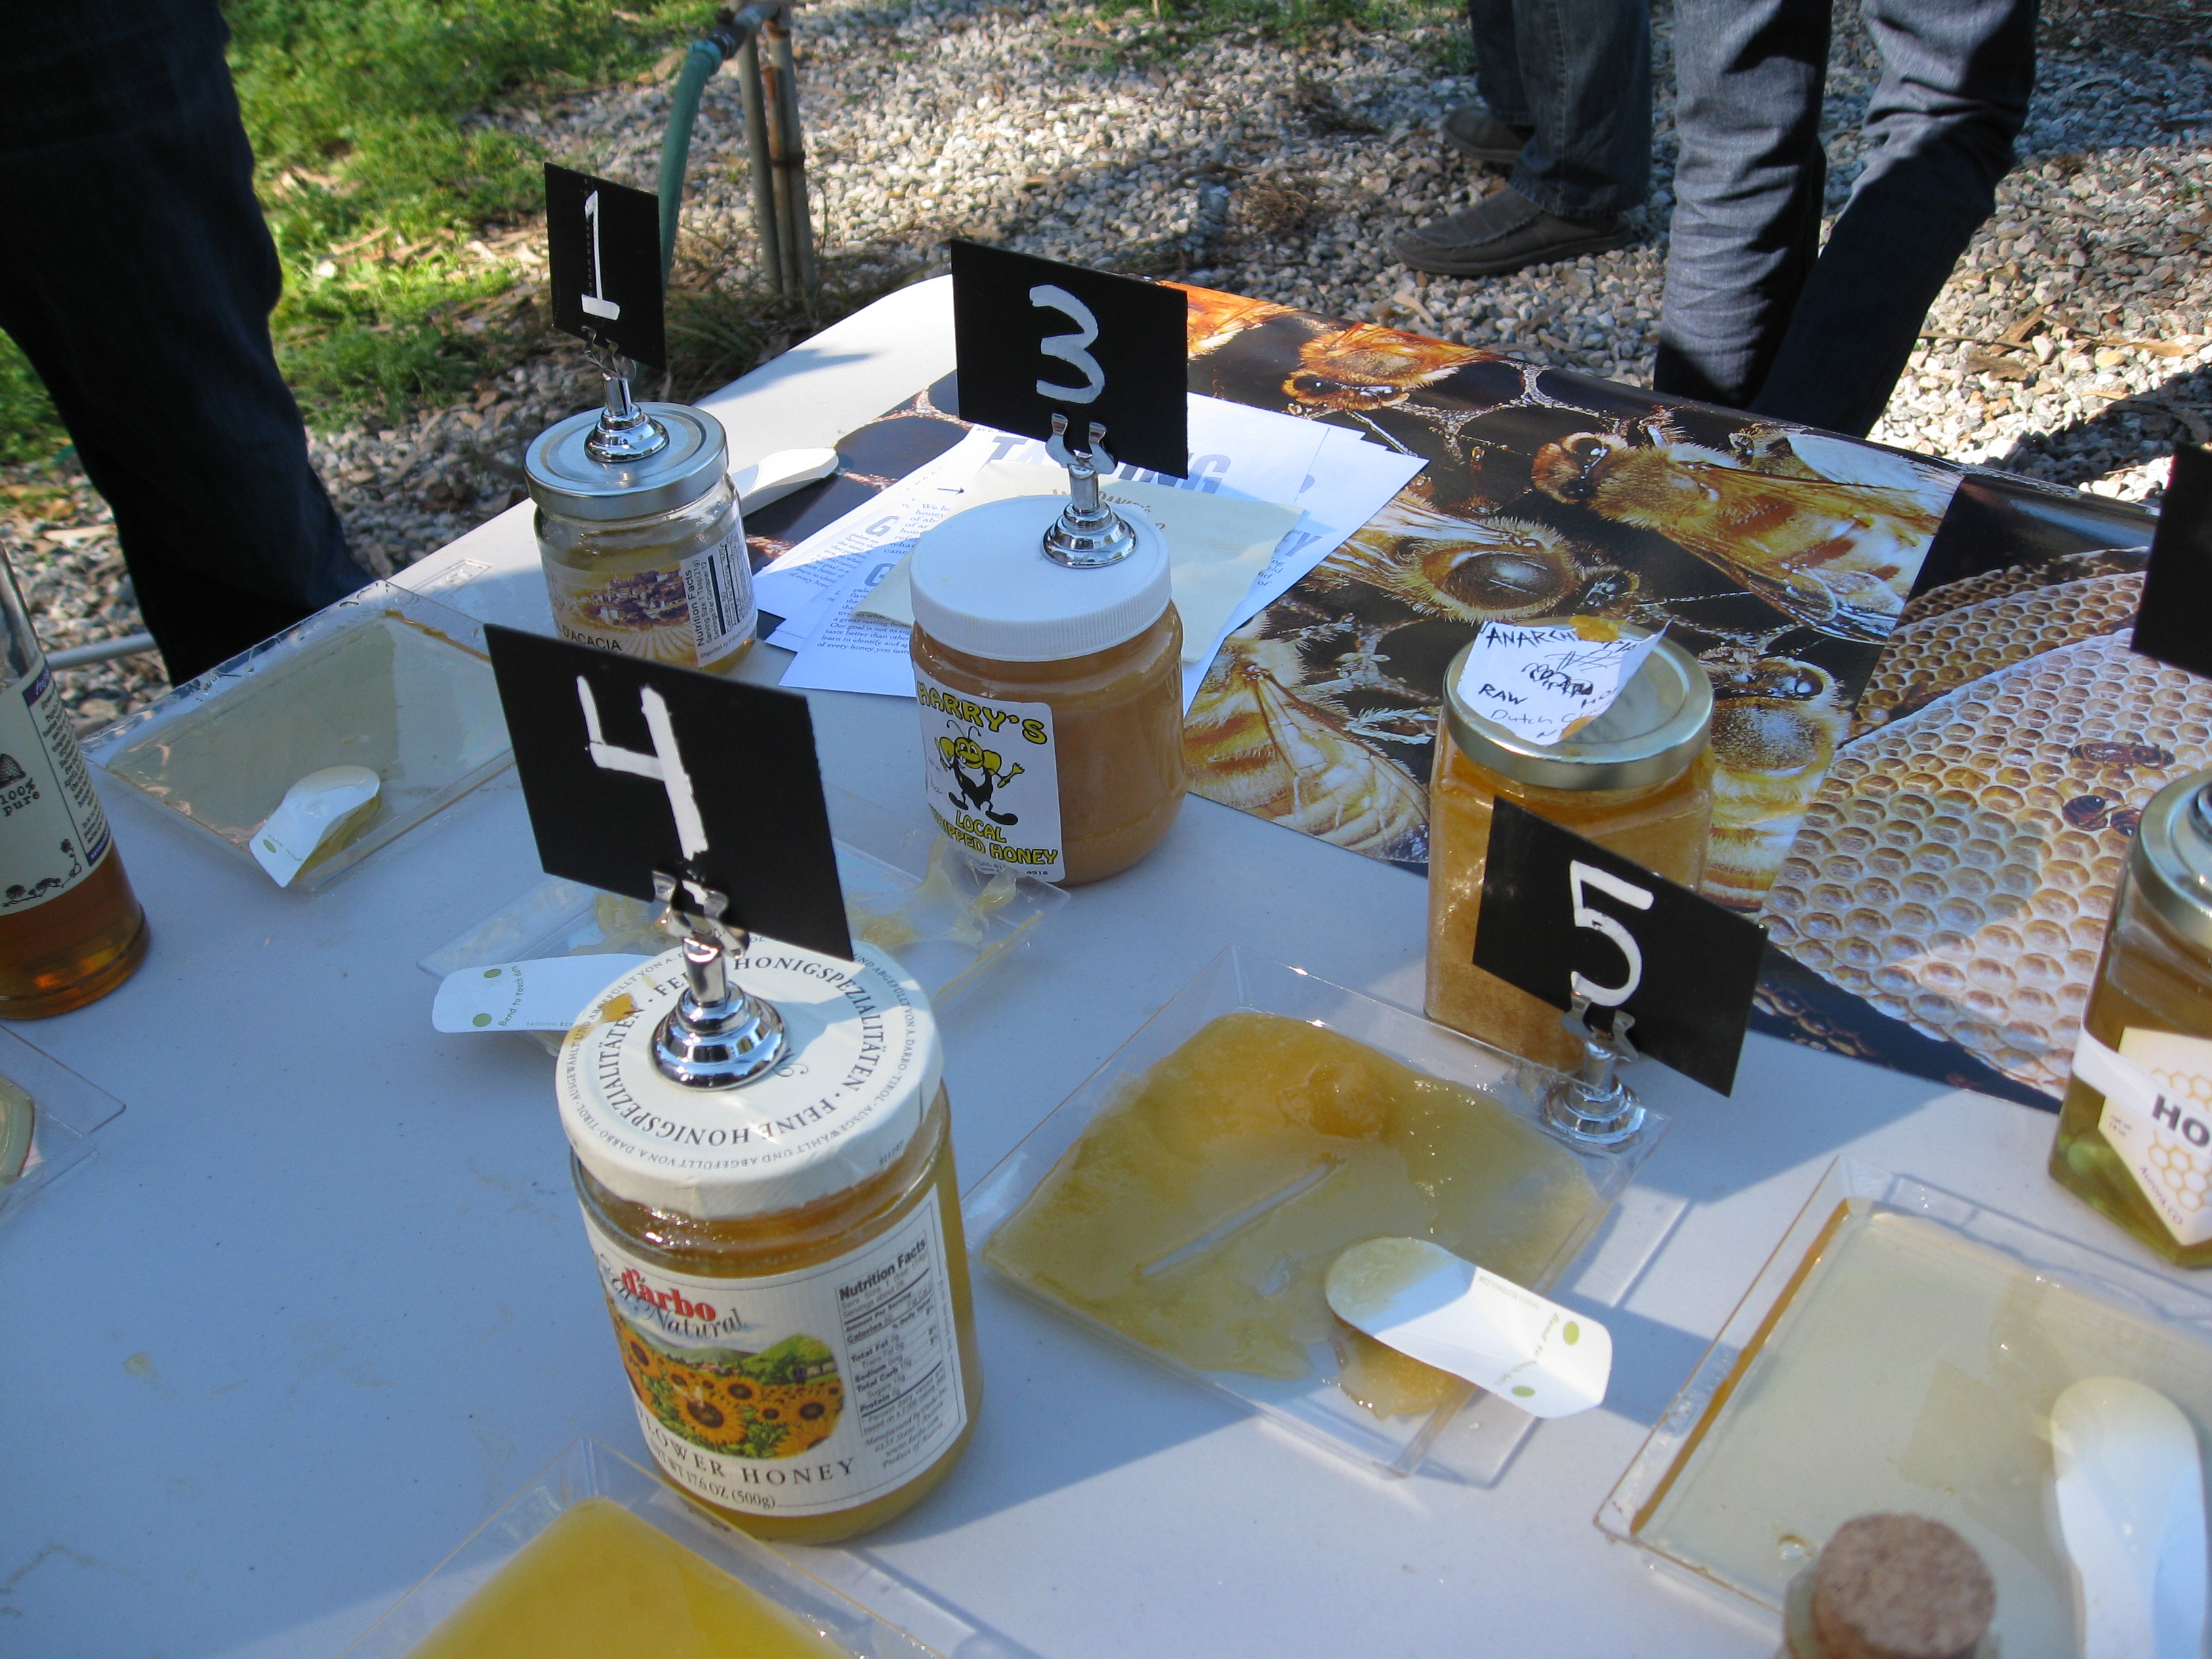 Sam Comfort and Harry Stein are professional beekeepers on opposite coasts.